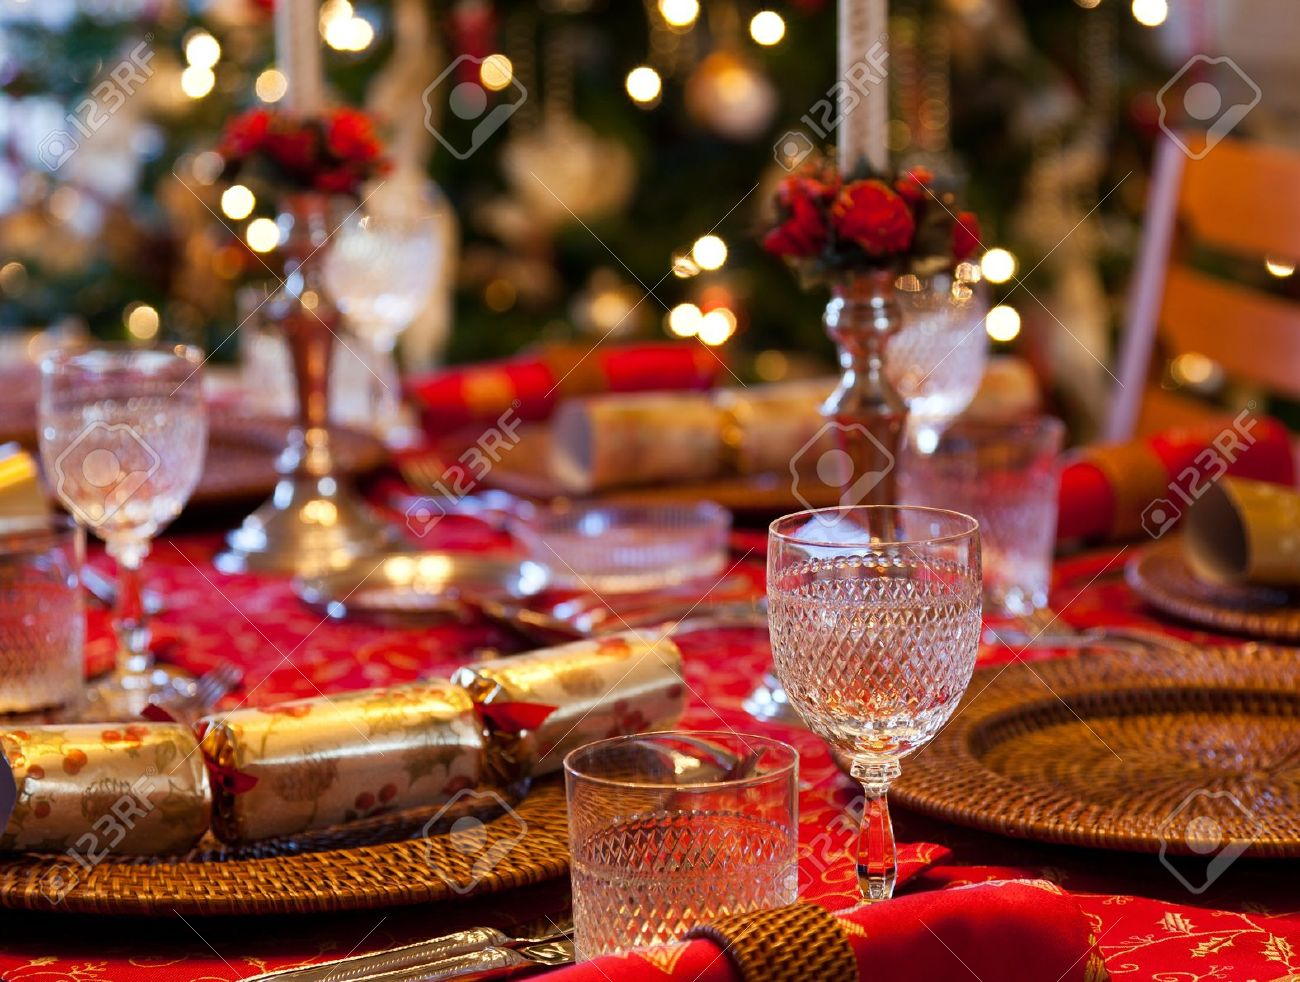 Christmas crackers on table set for Christmas lunch with candles and tree in background Stock Photo & Christmas Crackers On Table Set For Christmas Lunch With Candles ...